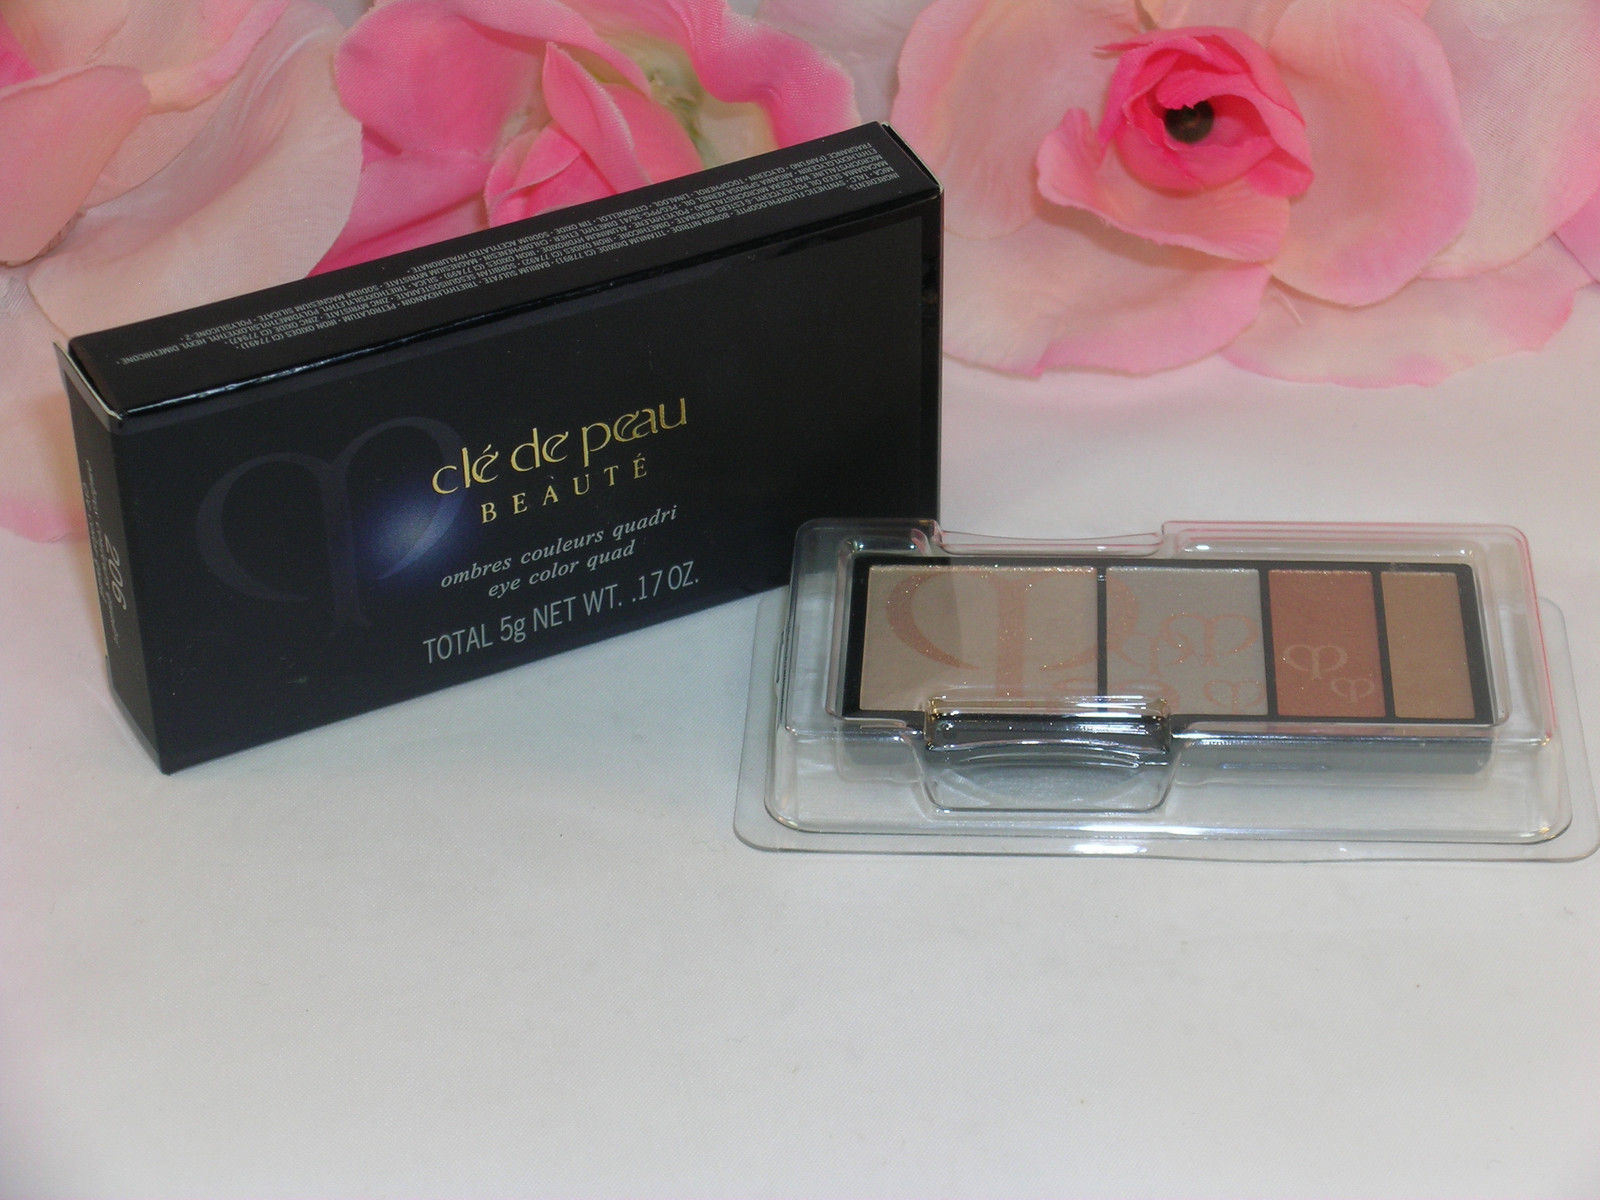 Primary image for New Shiseido Cle De Peau Beaute Eye Shadow Quad Refill #206 Colors & Highlights